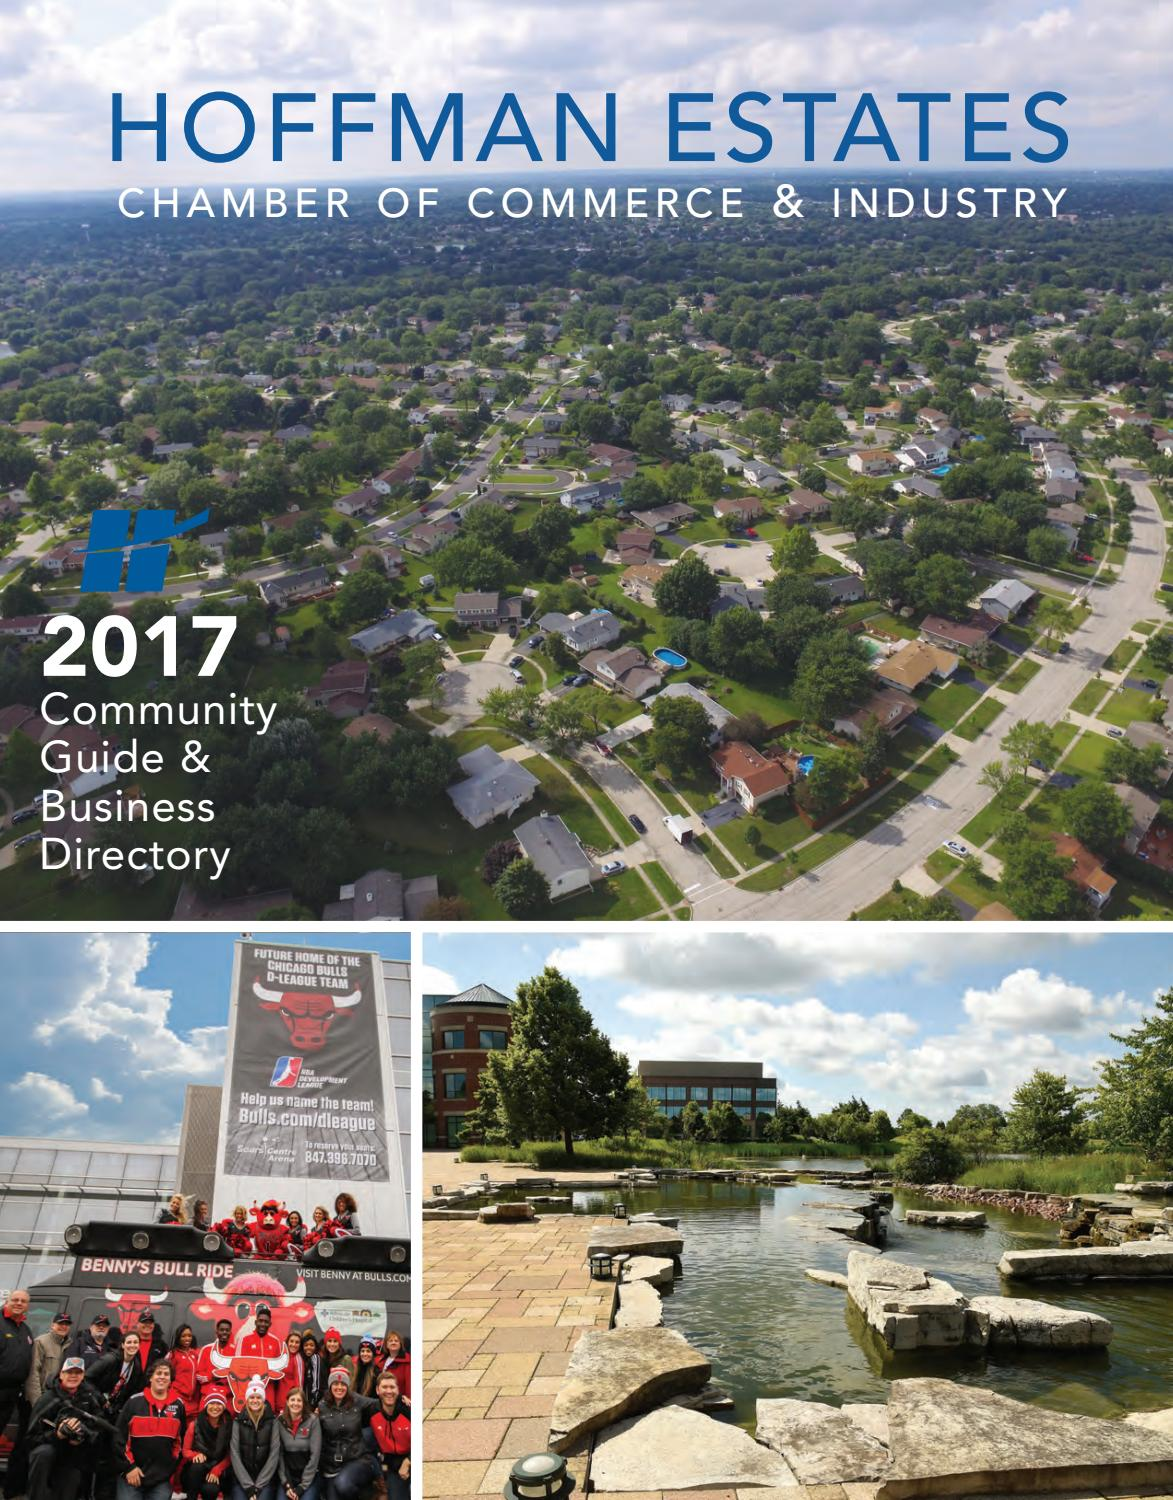 Hoffman Estates Il Community Guide 2017 By Town Square